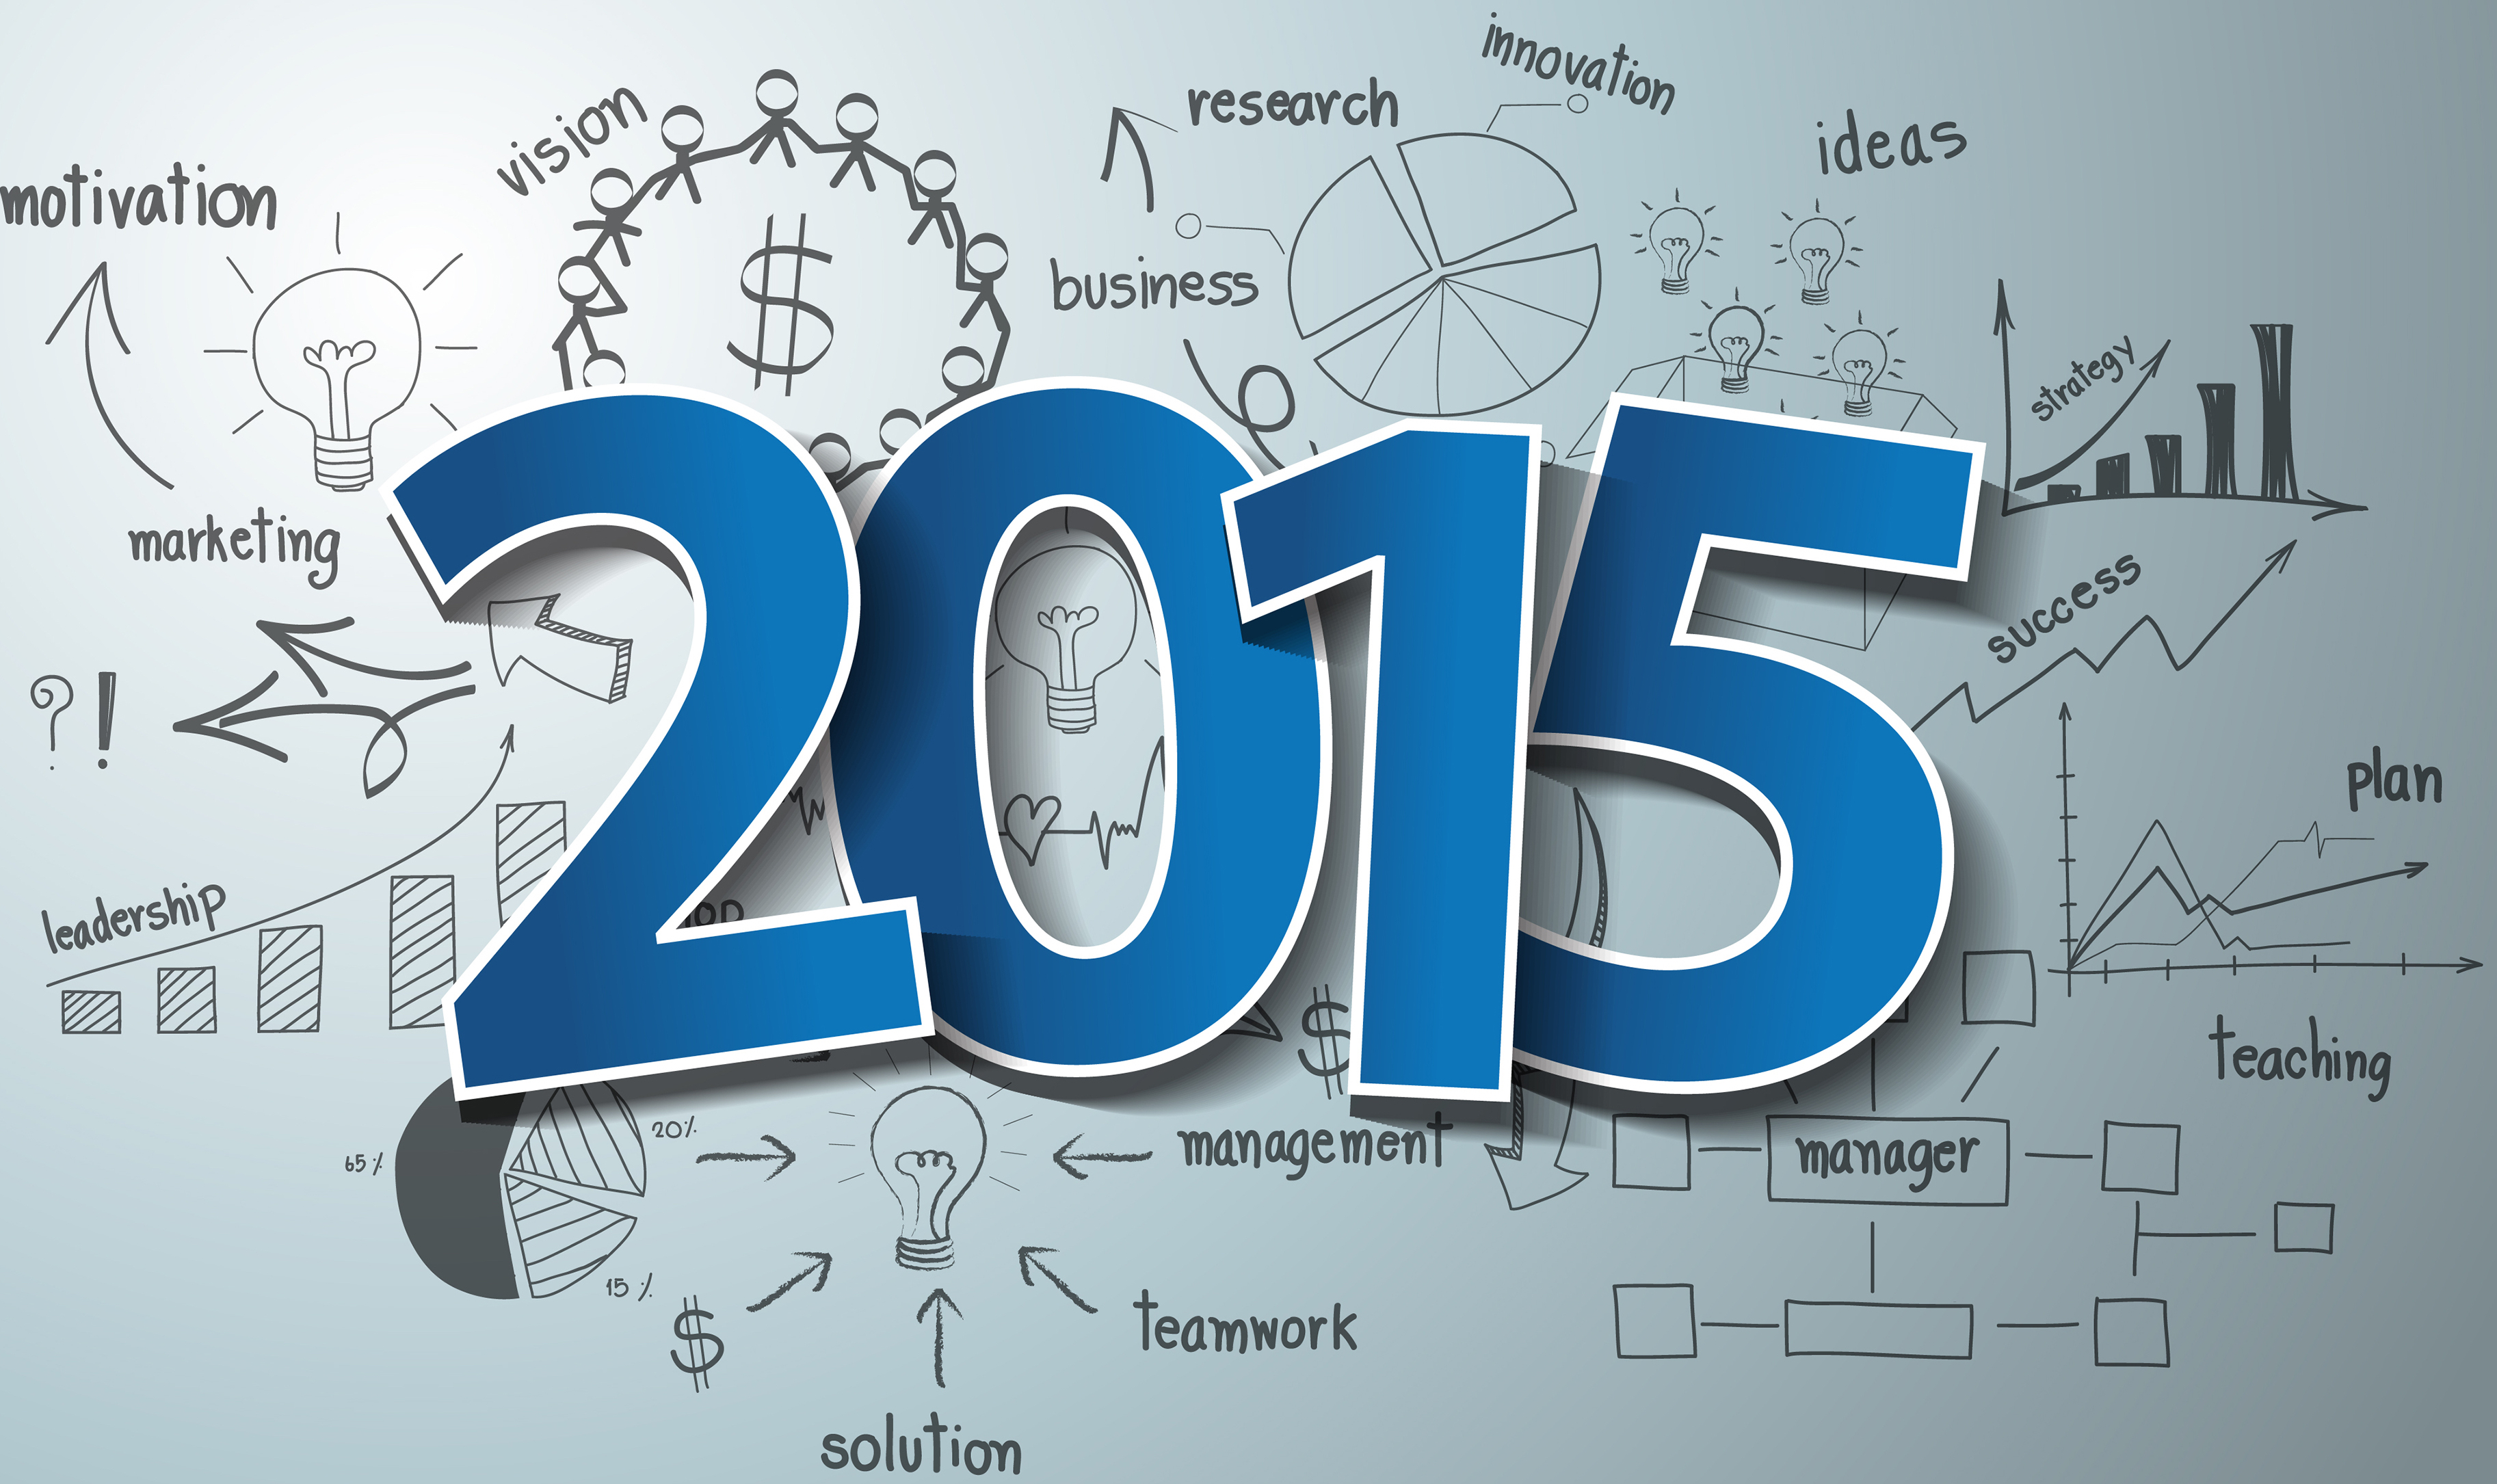 The key business landmarks of 2015